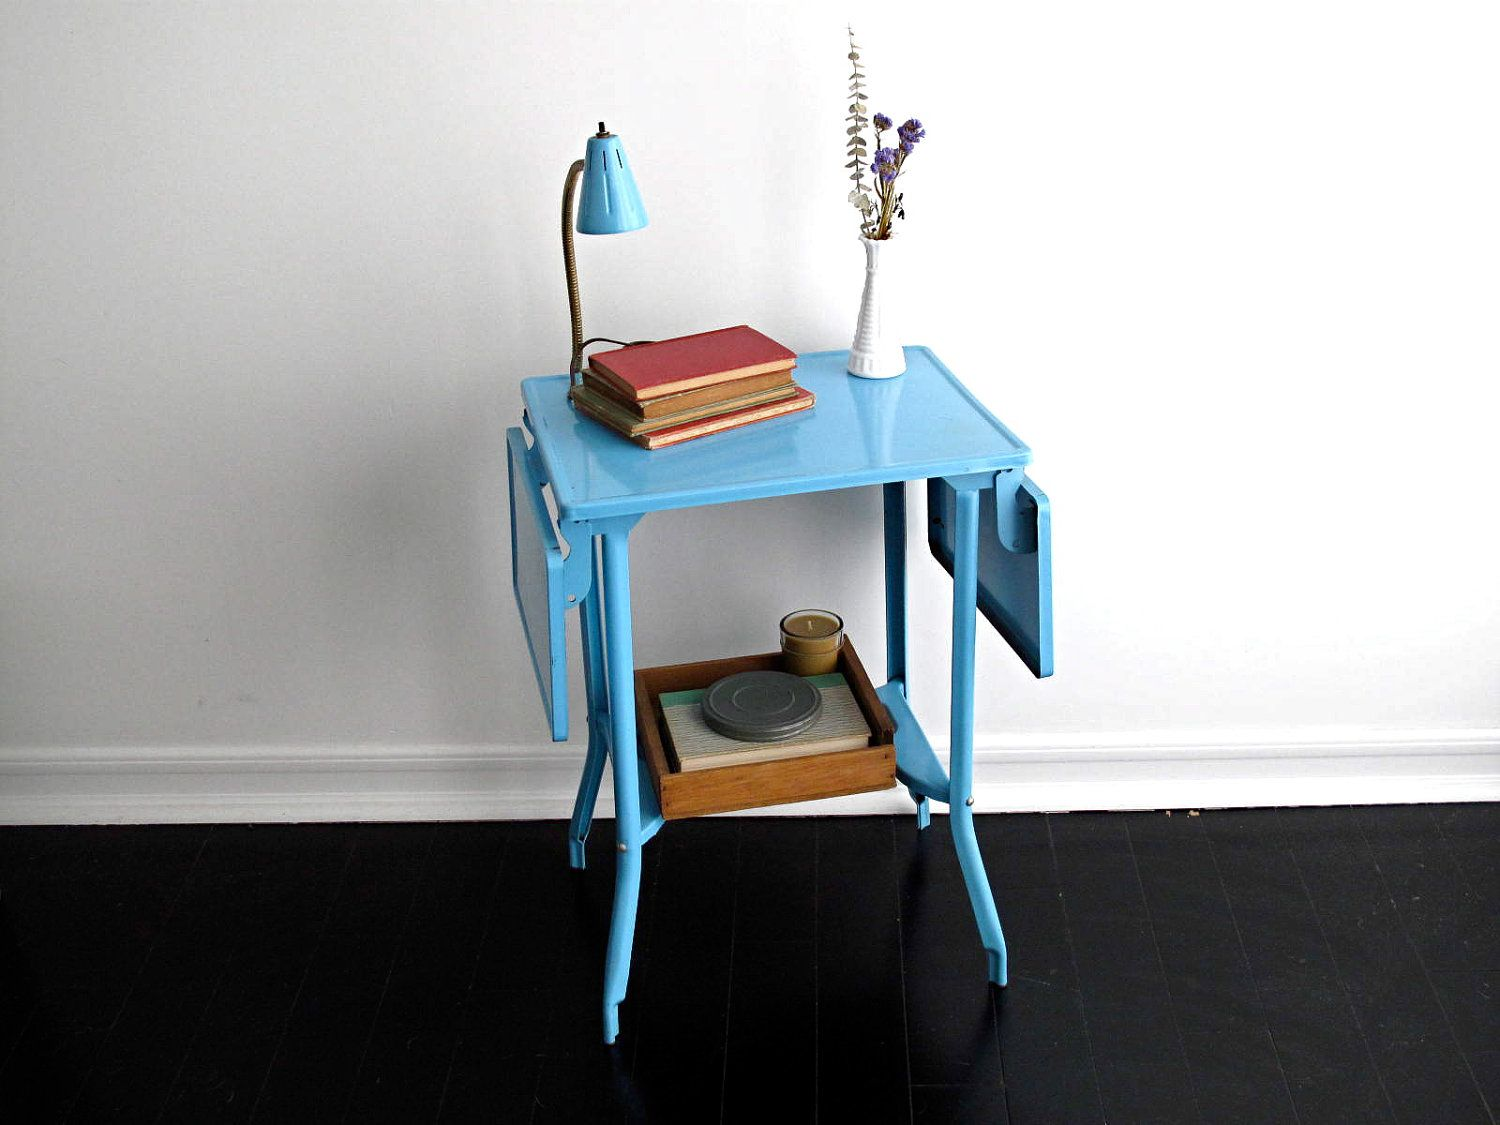 Metal Typewriter Table With Light Blue Side By SnapshotVintage. $118.00,  Via Etsy.